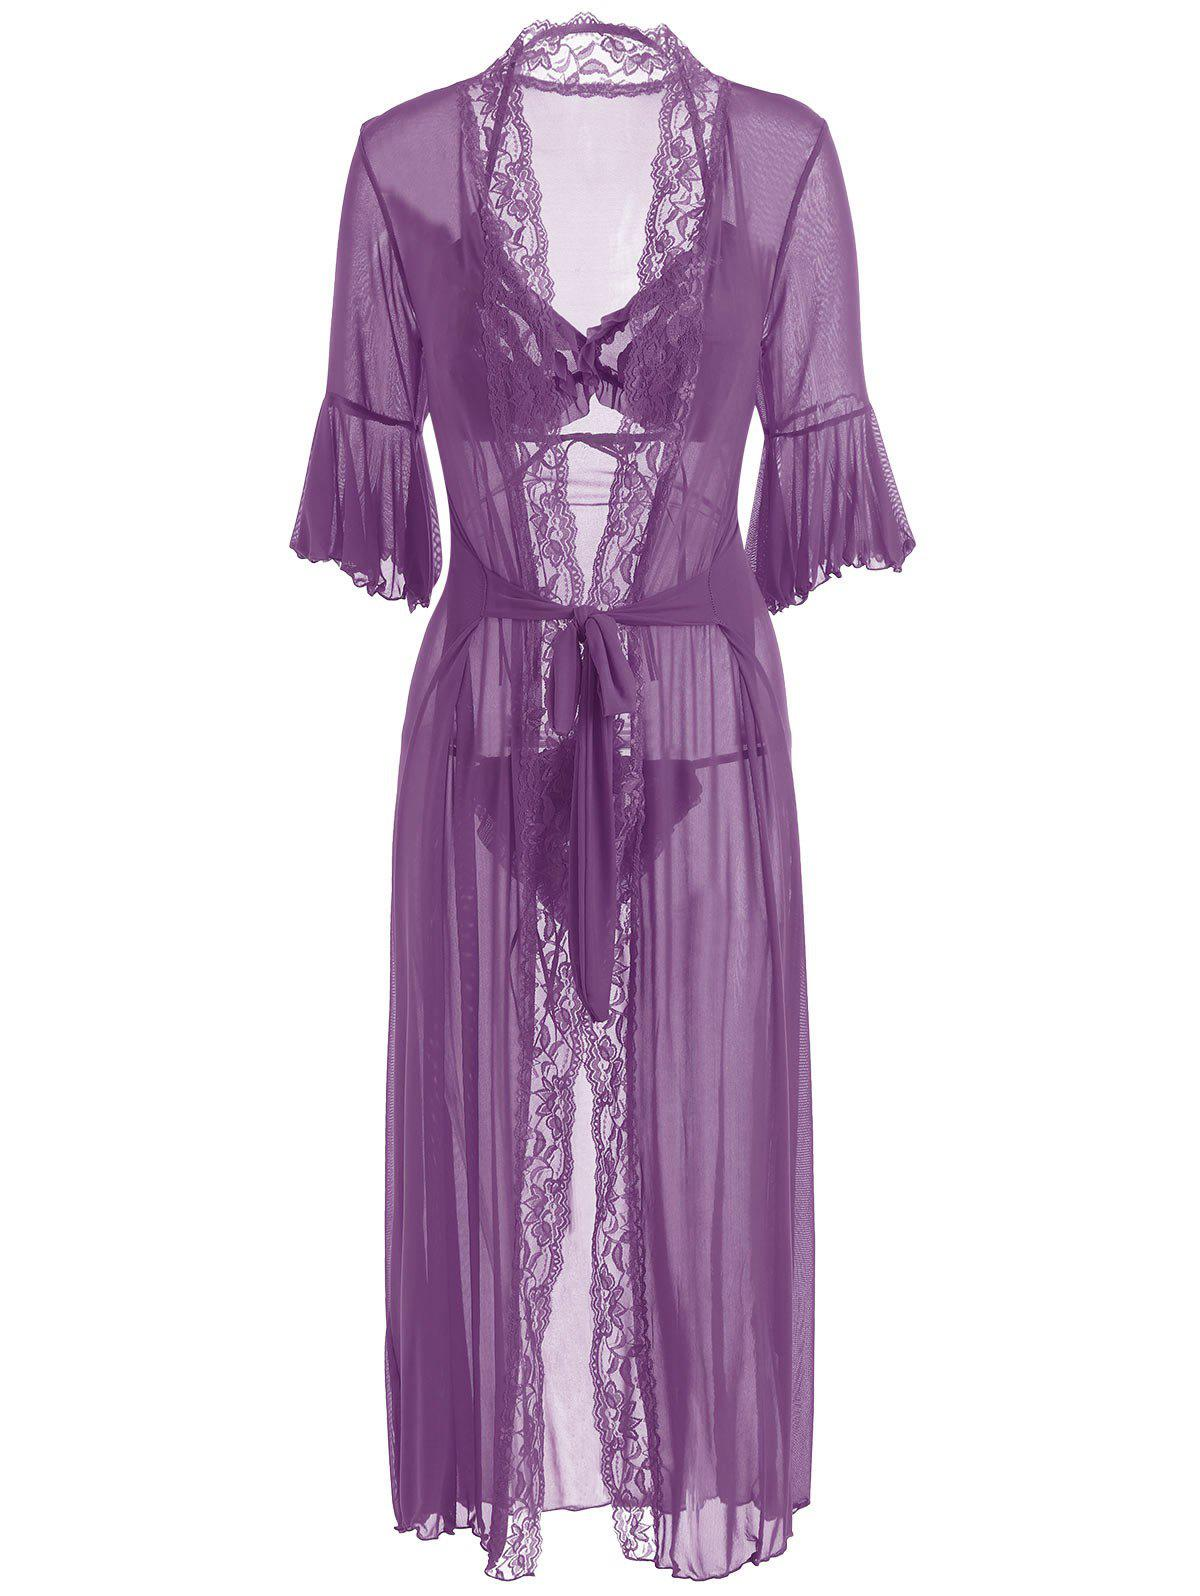 Ruffles Bralette Set with Maxi Wrap Dress - PURPLE ONE SIZE